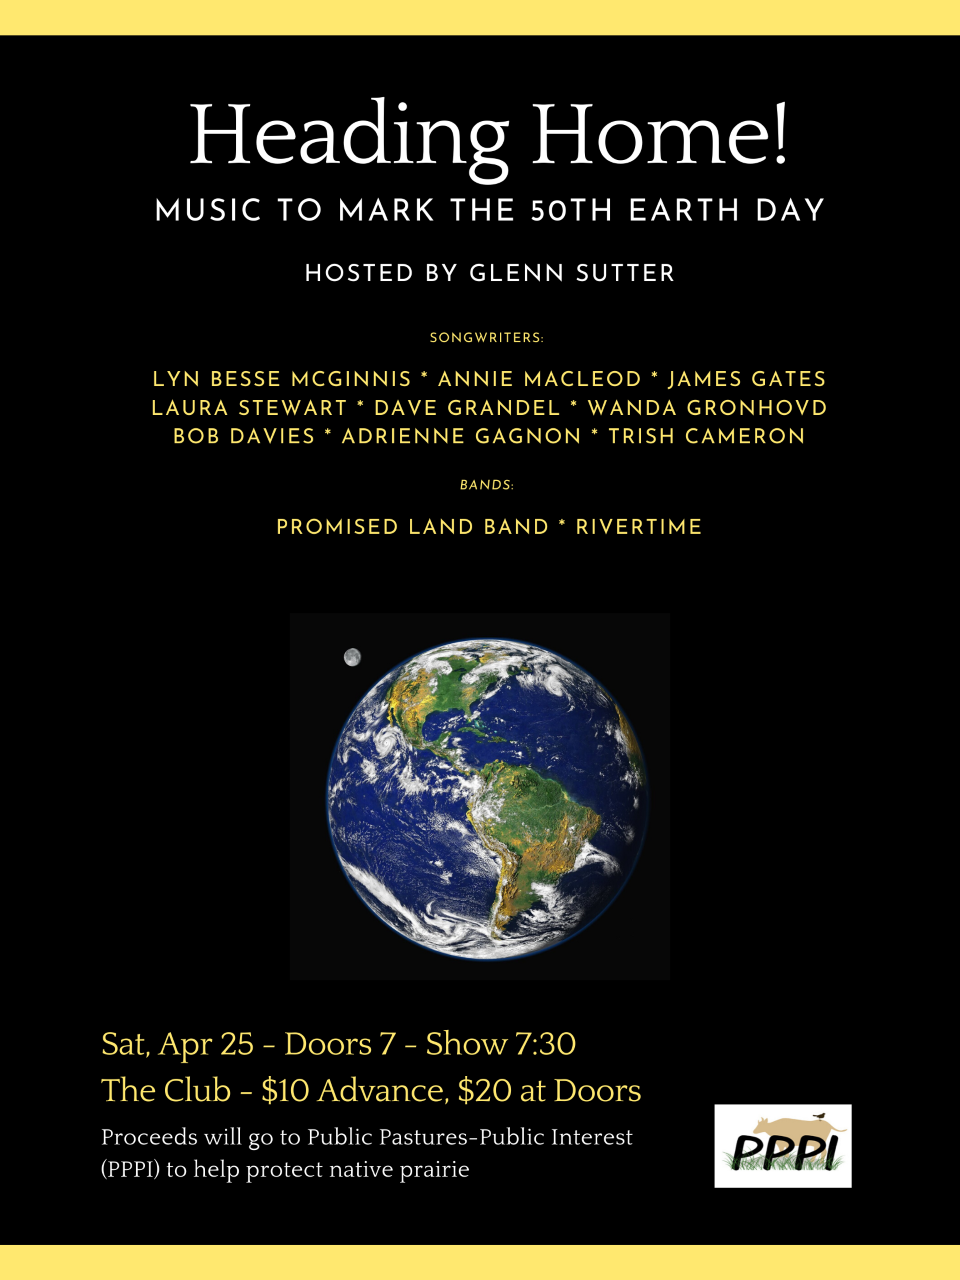 Heading Home - Music to mark the 50th Earth Day - Cancelled